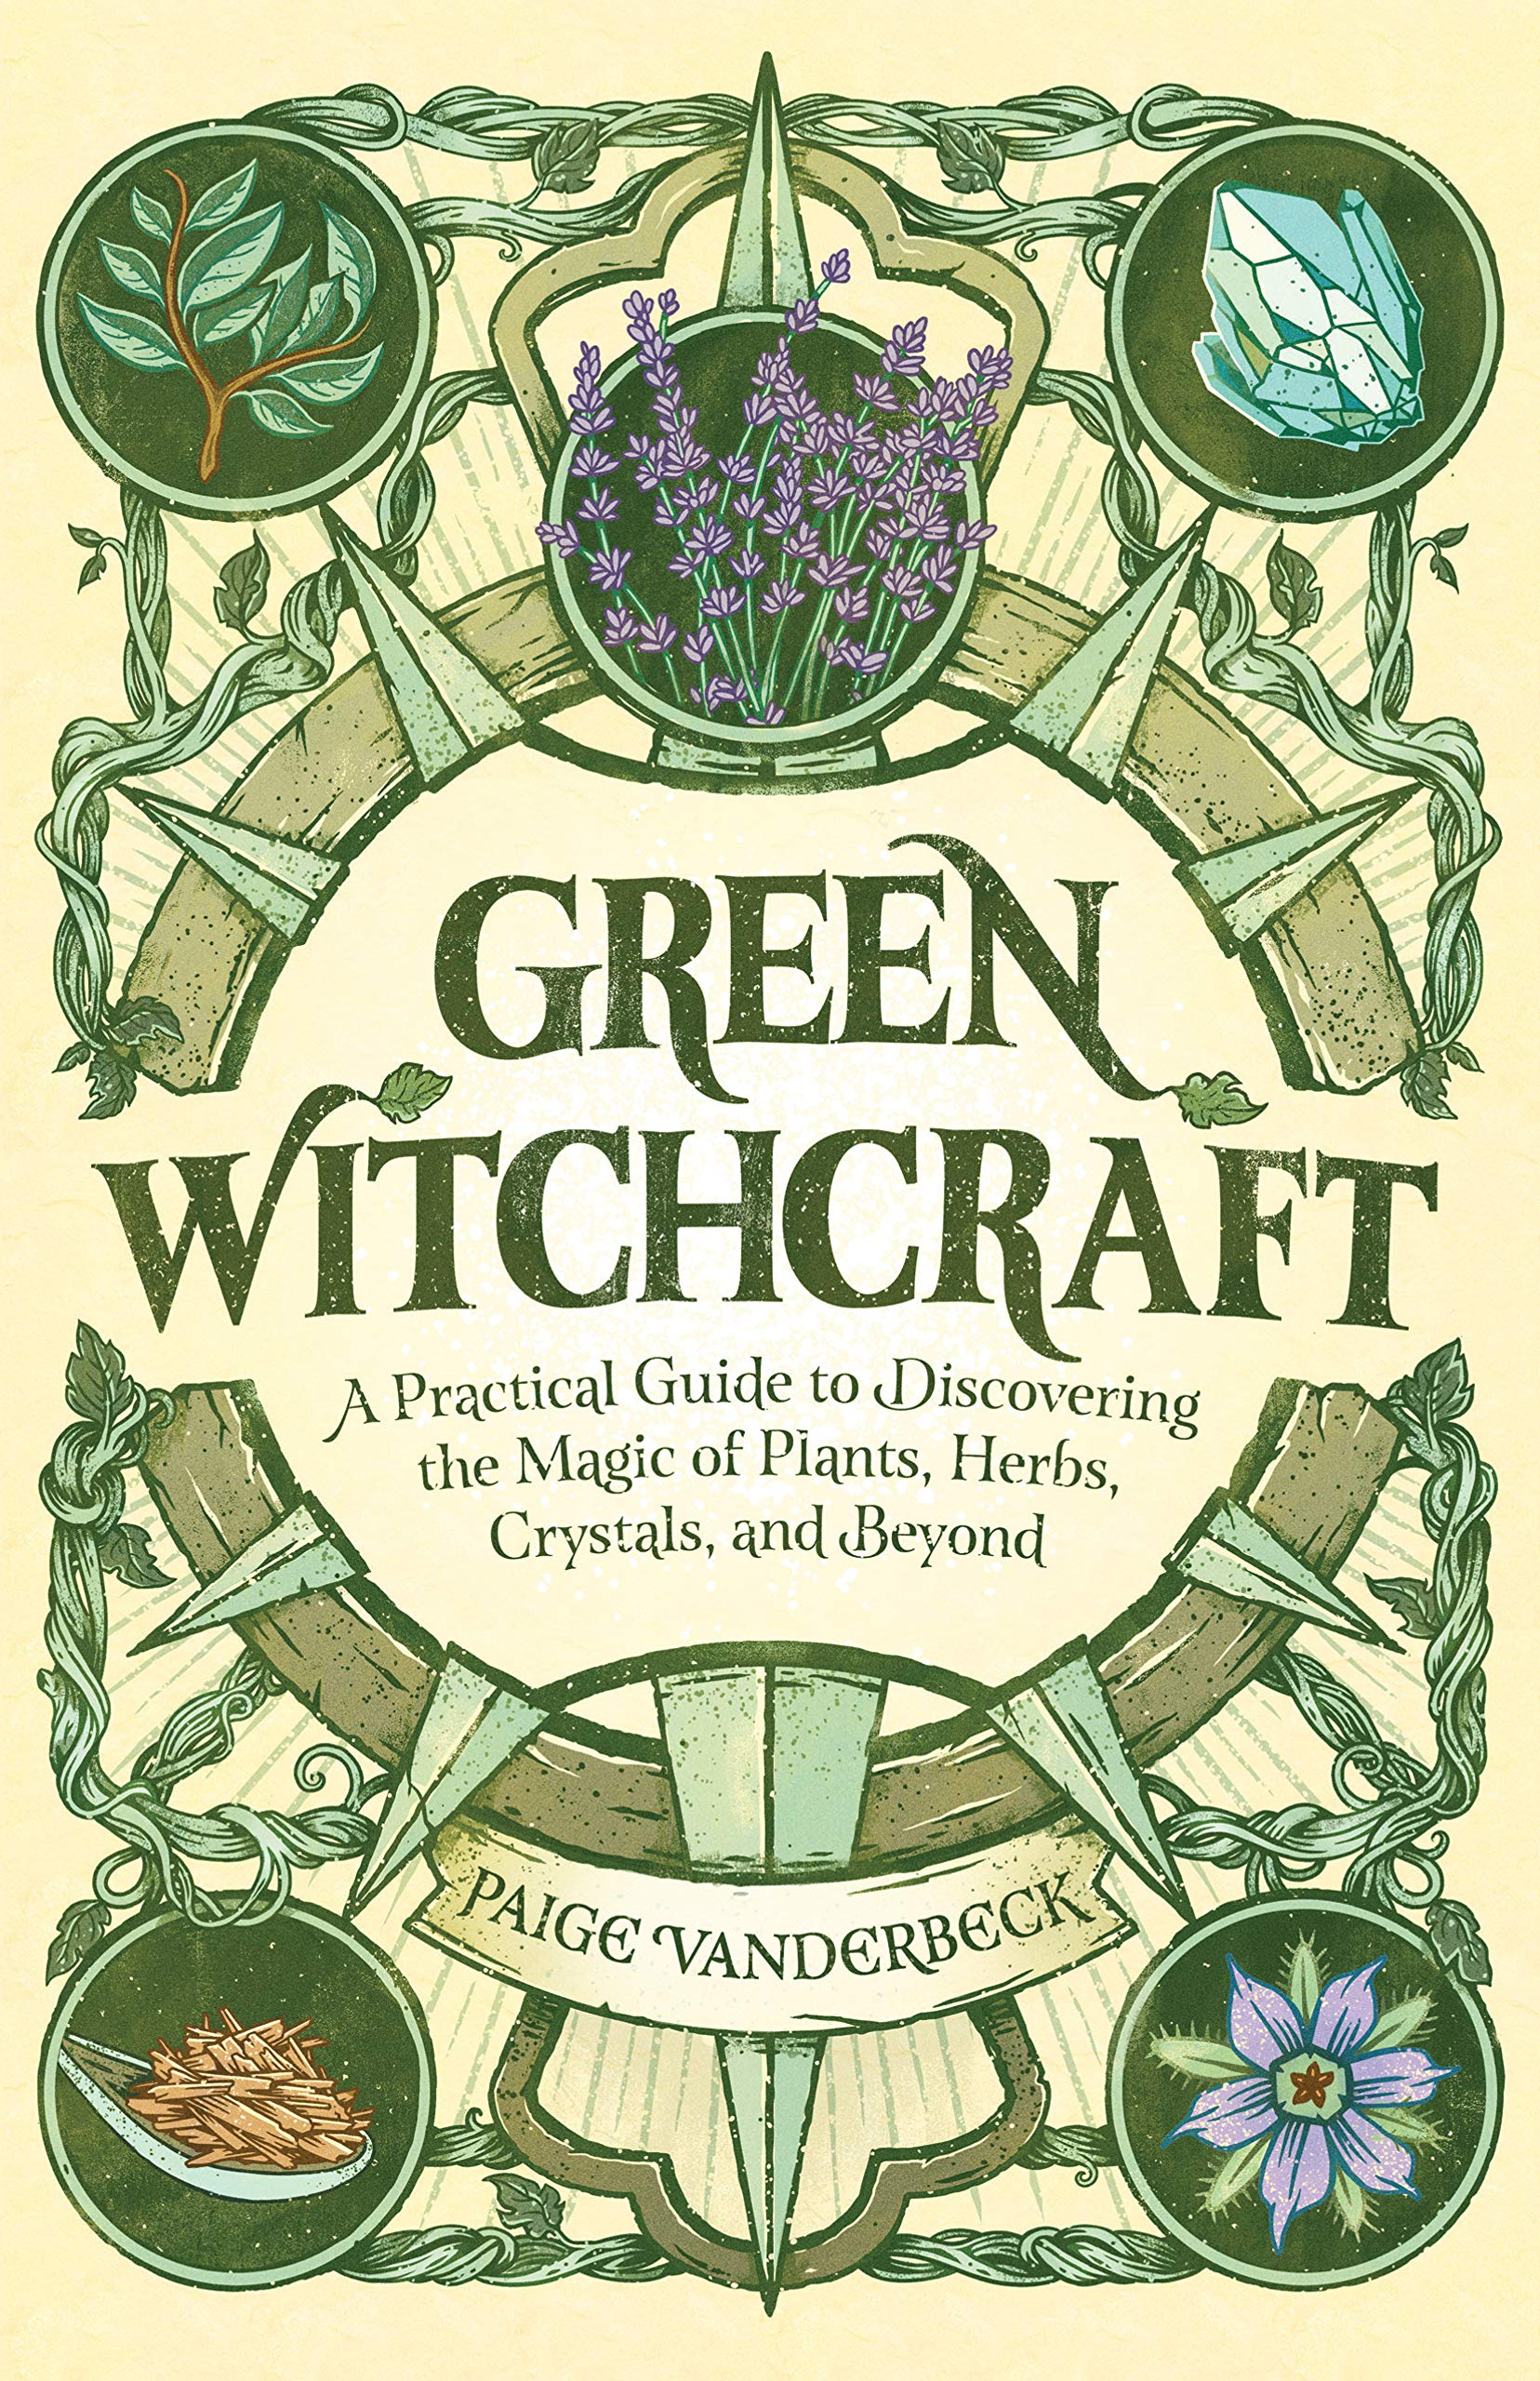 Green Witchcraft: A Practical Guide to Discovering the Magic of Plants, Herbs, Crystals, and Beyond